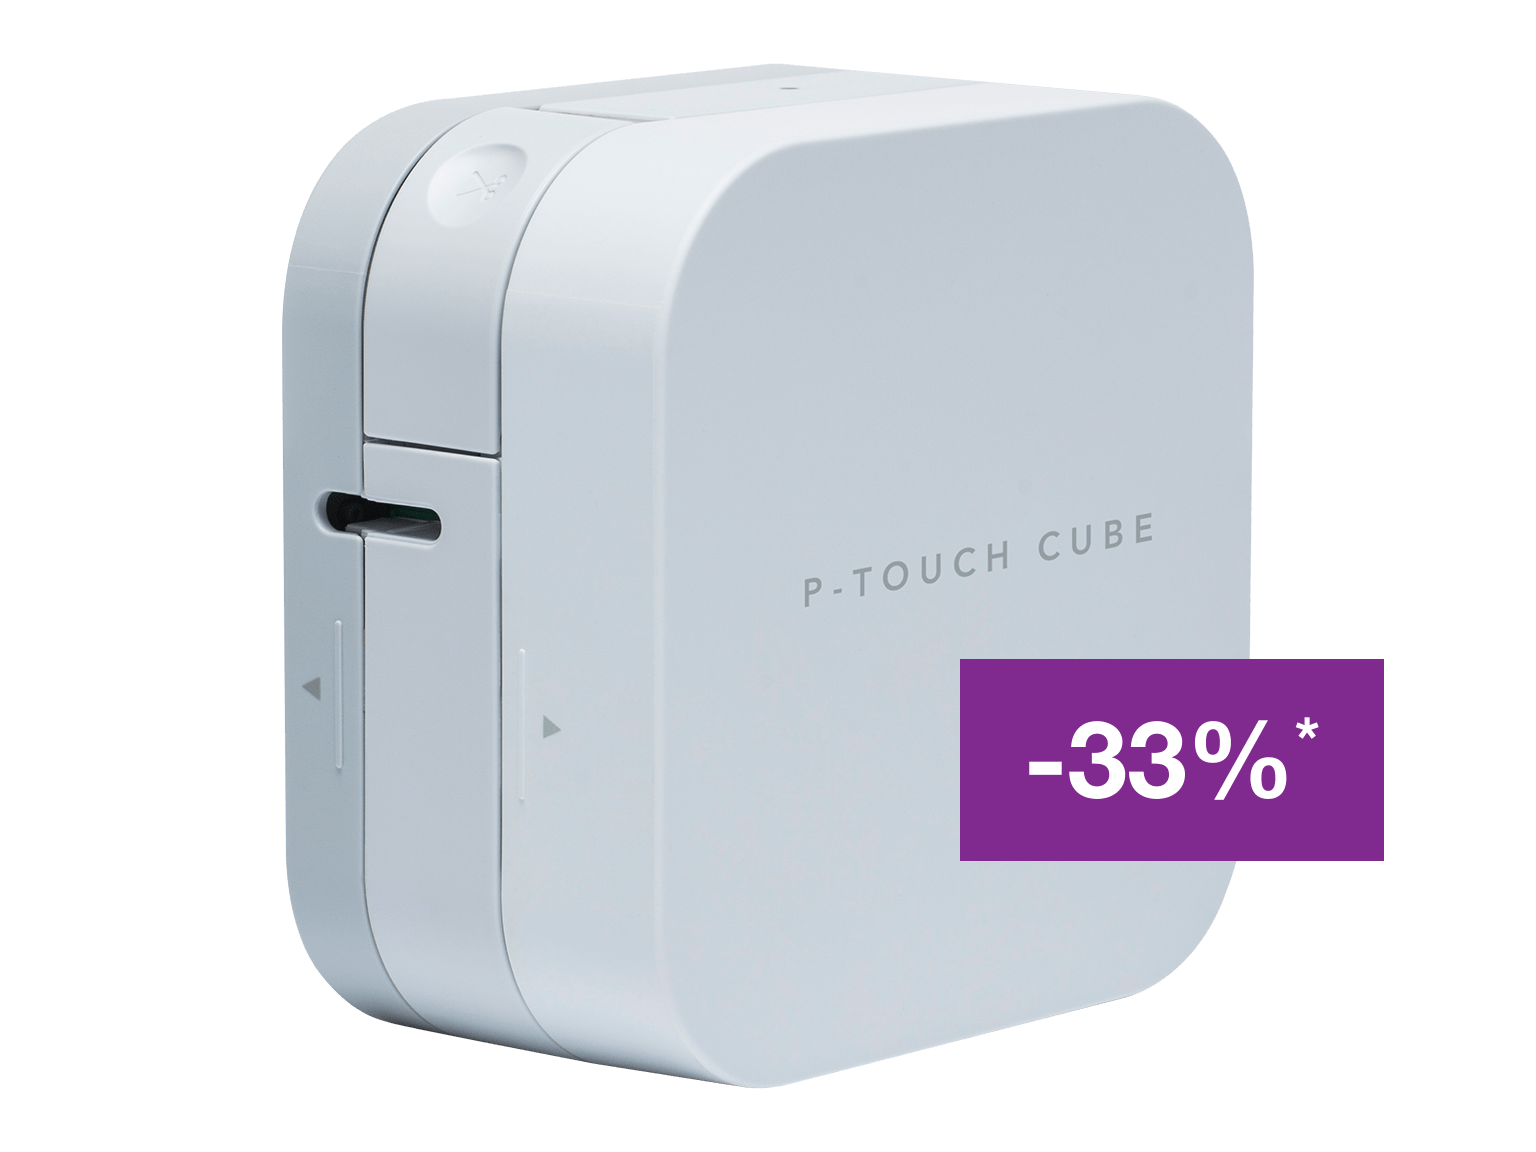 Brother P-touch CUBE P300BT label printer with discount offer